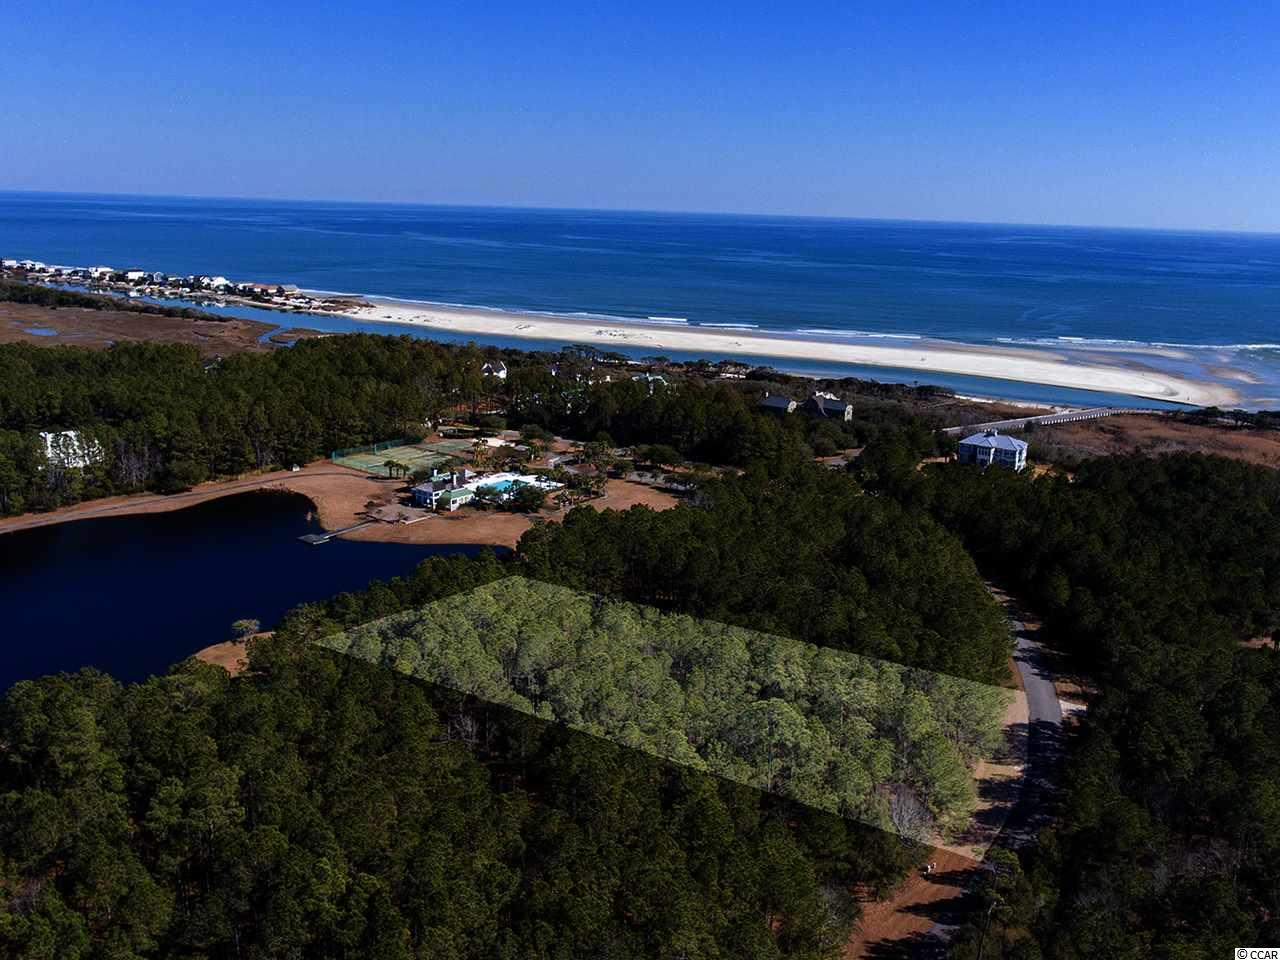 This homesite is located in the gated community of Prince George Oceanside. Overlooking the beautiful Ocean Clubhouse and lake, the homesite is just a short walk away from the ocean amenities including pool, tennis, basketball, volleyball, and playground. With private beach access, Prince George is a one-of-a-kind location on the East Coast. This homesite has been flagged on all corners and cut for easy access to view the lot. High and dry - ready to build on.